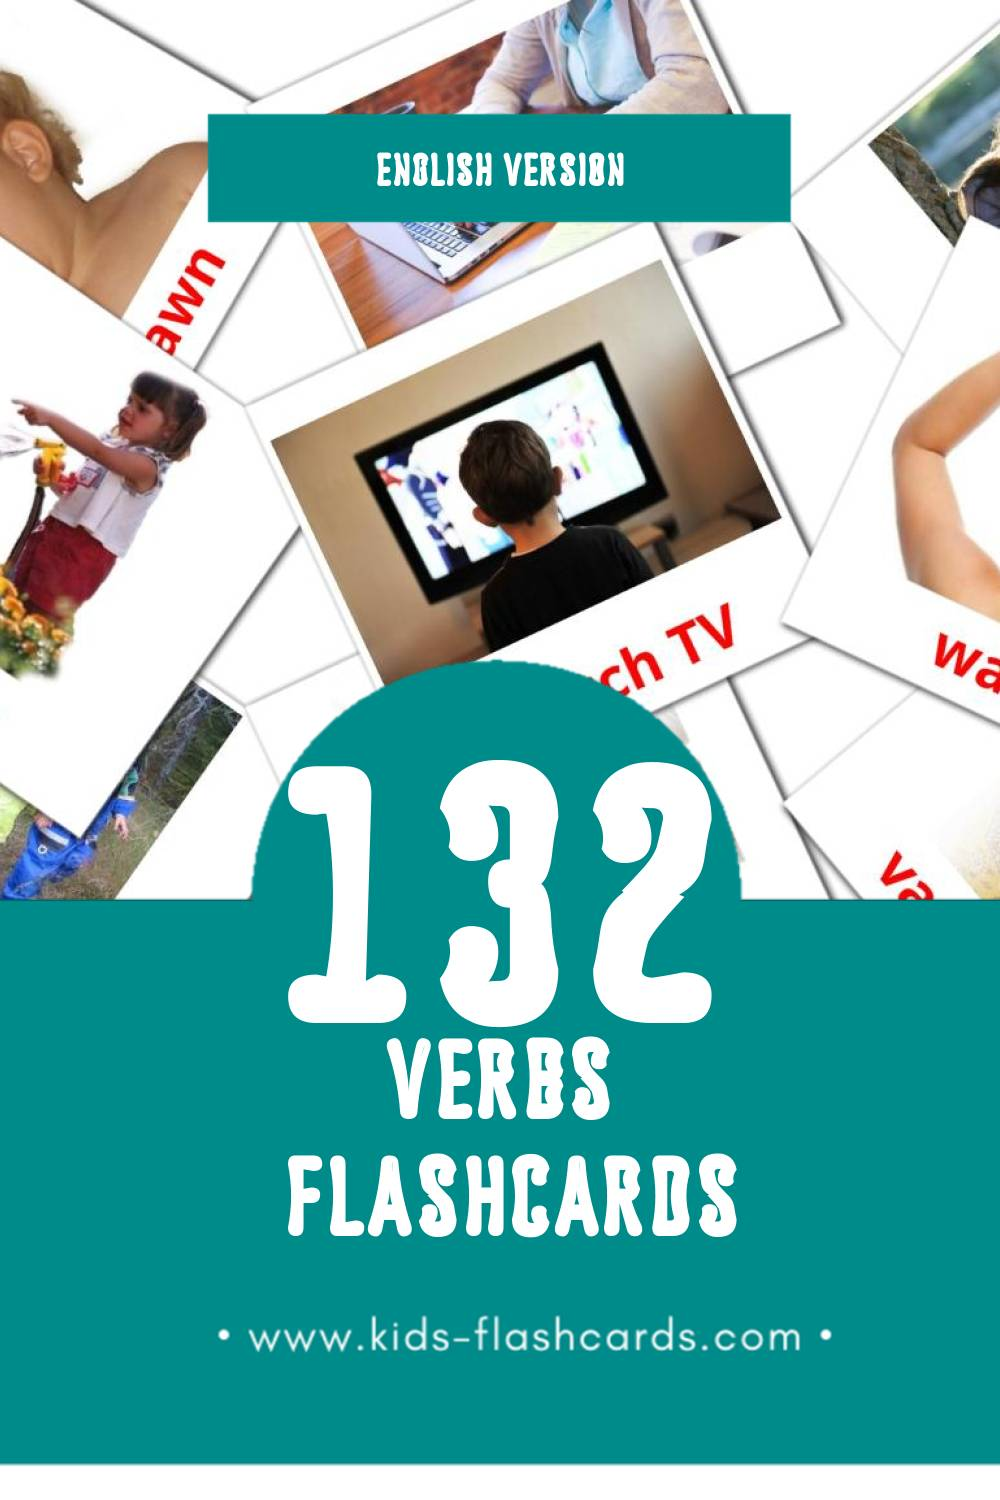 Visual Verbs Flashcards for Toddlers (133 cards in English)